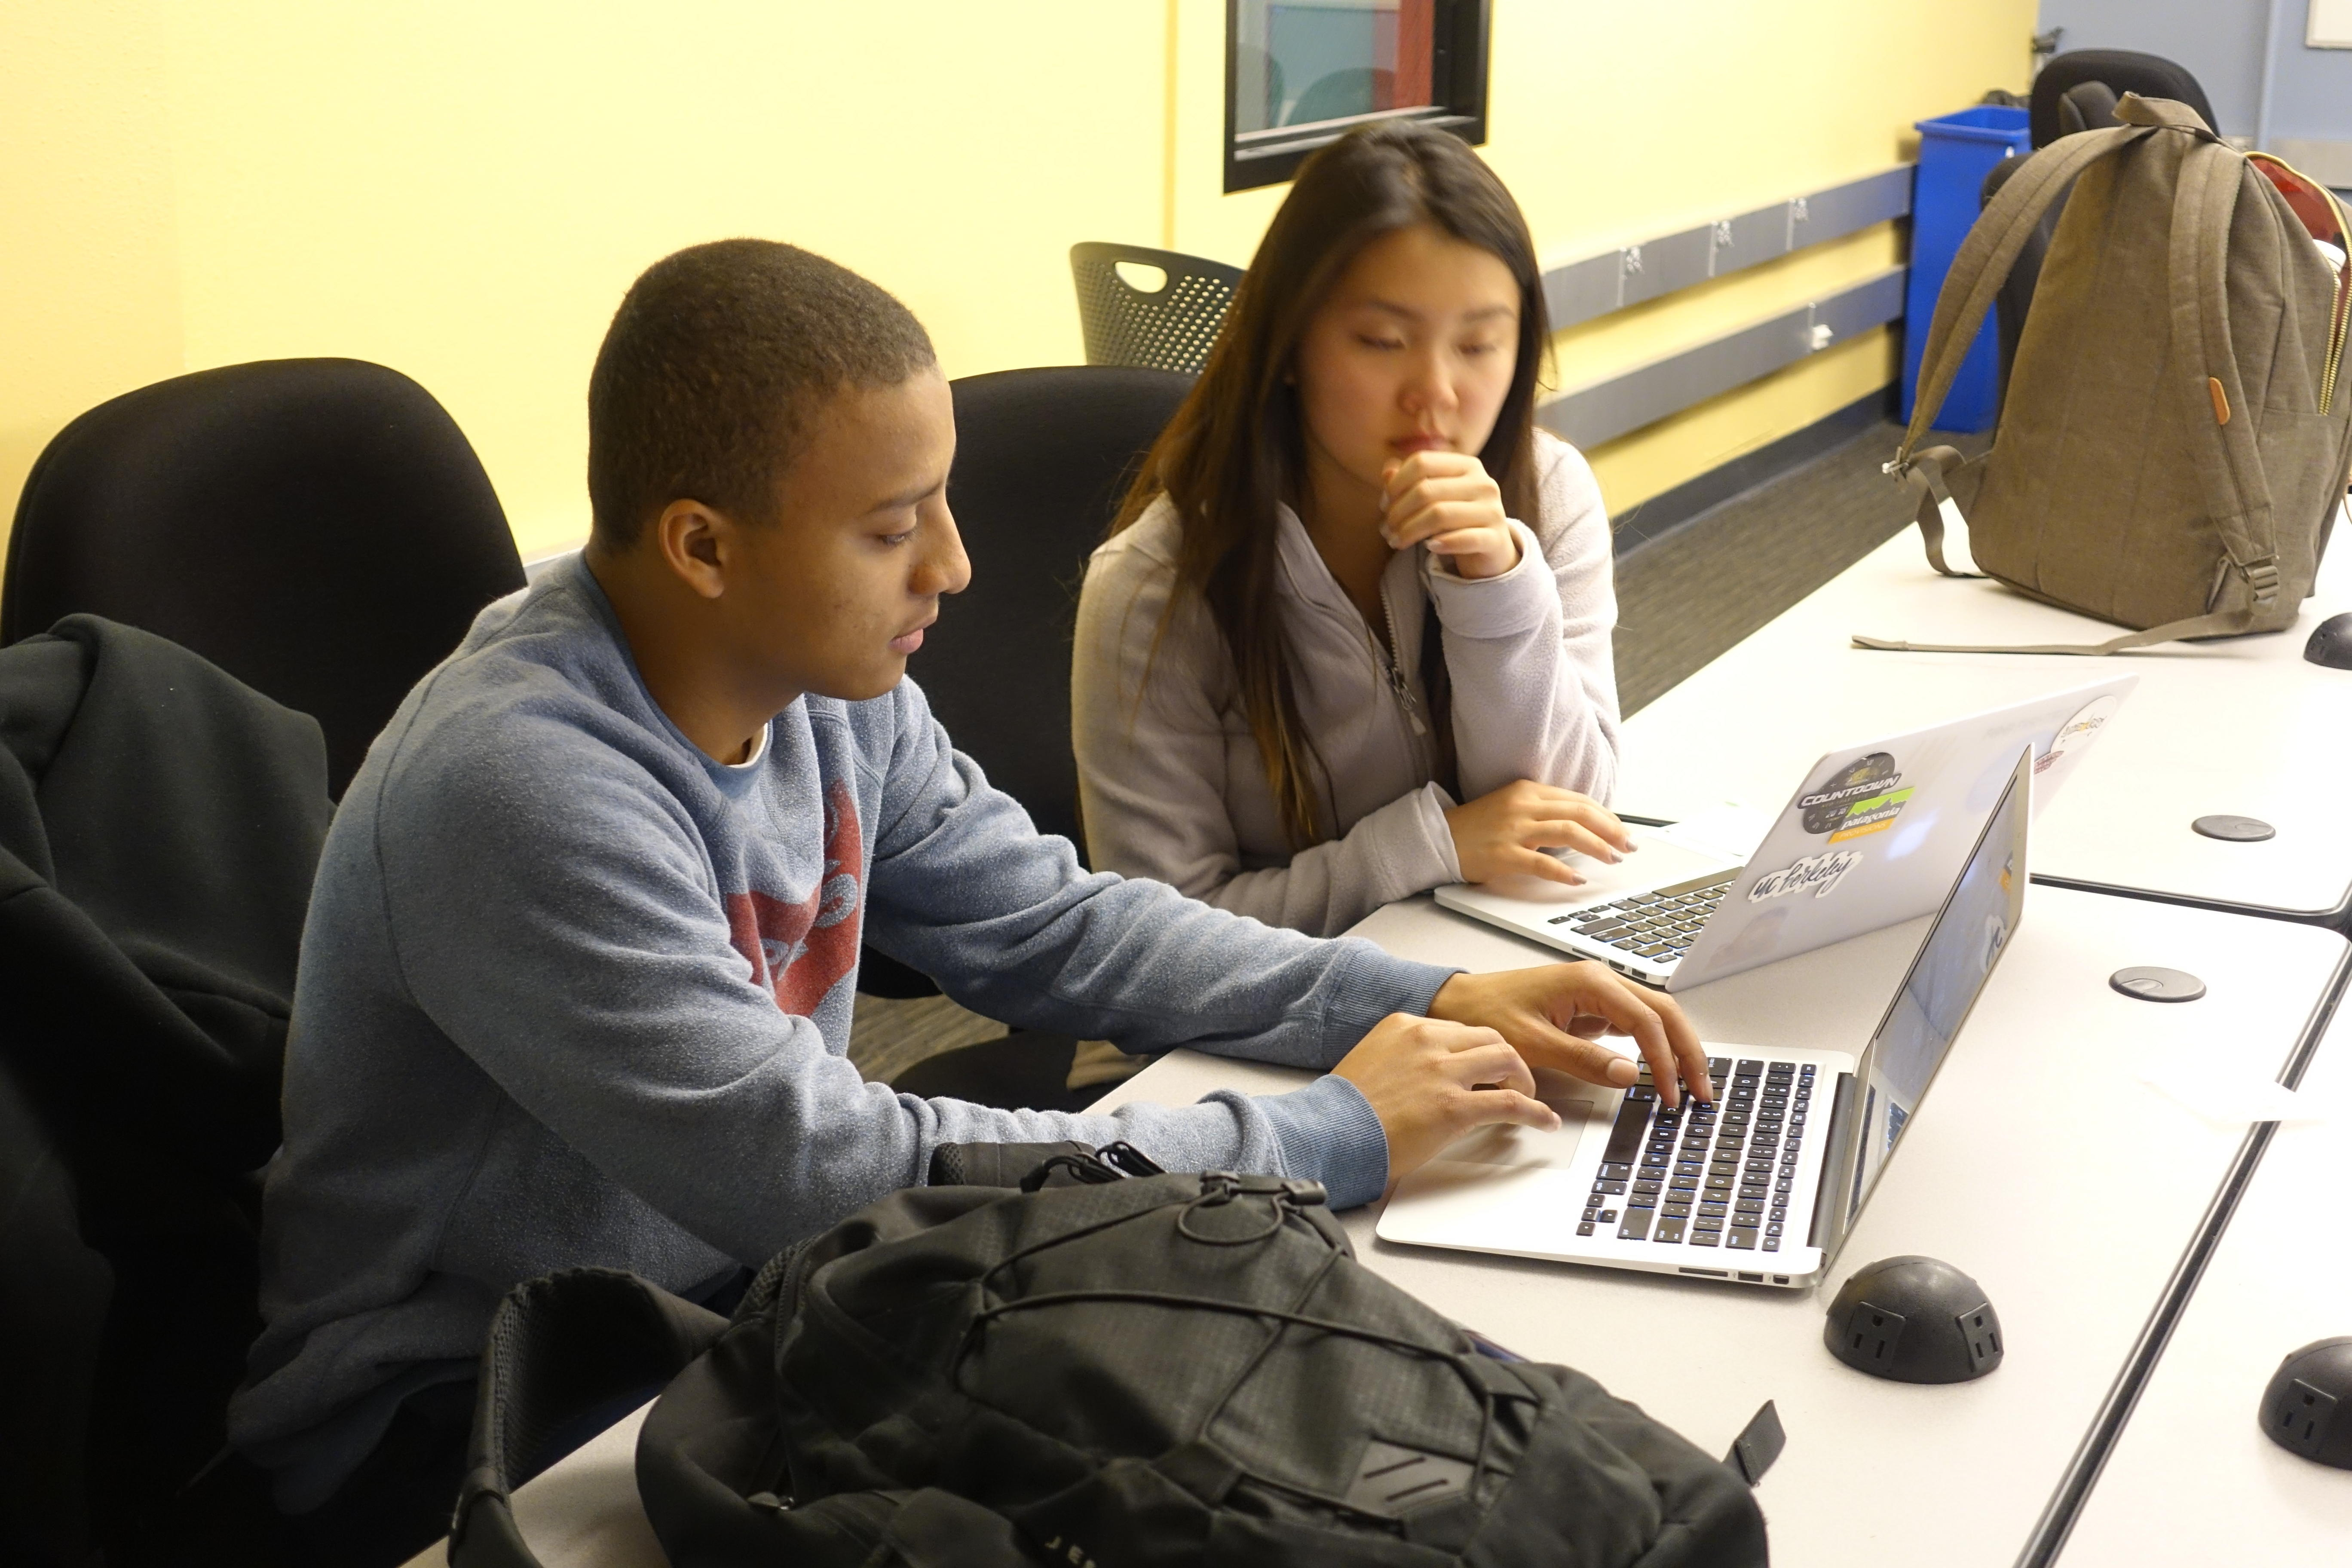 Students in Data Science module in Victoria Robinson's Ethnic Studies course